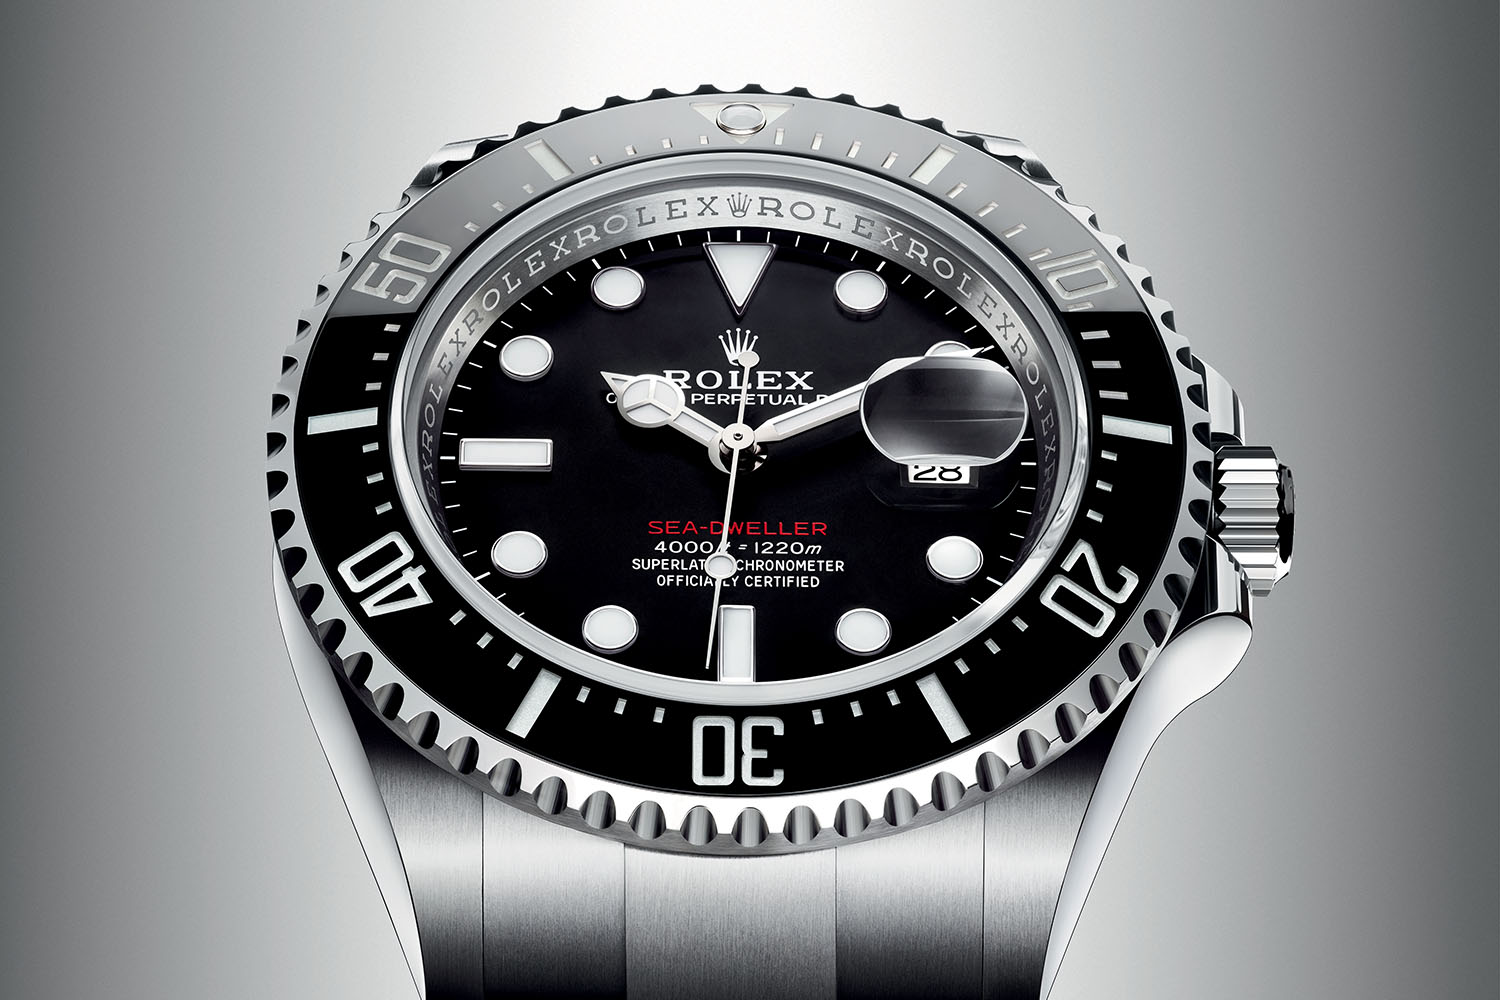 Rolex Sea Dweller 4000 For Sale